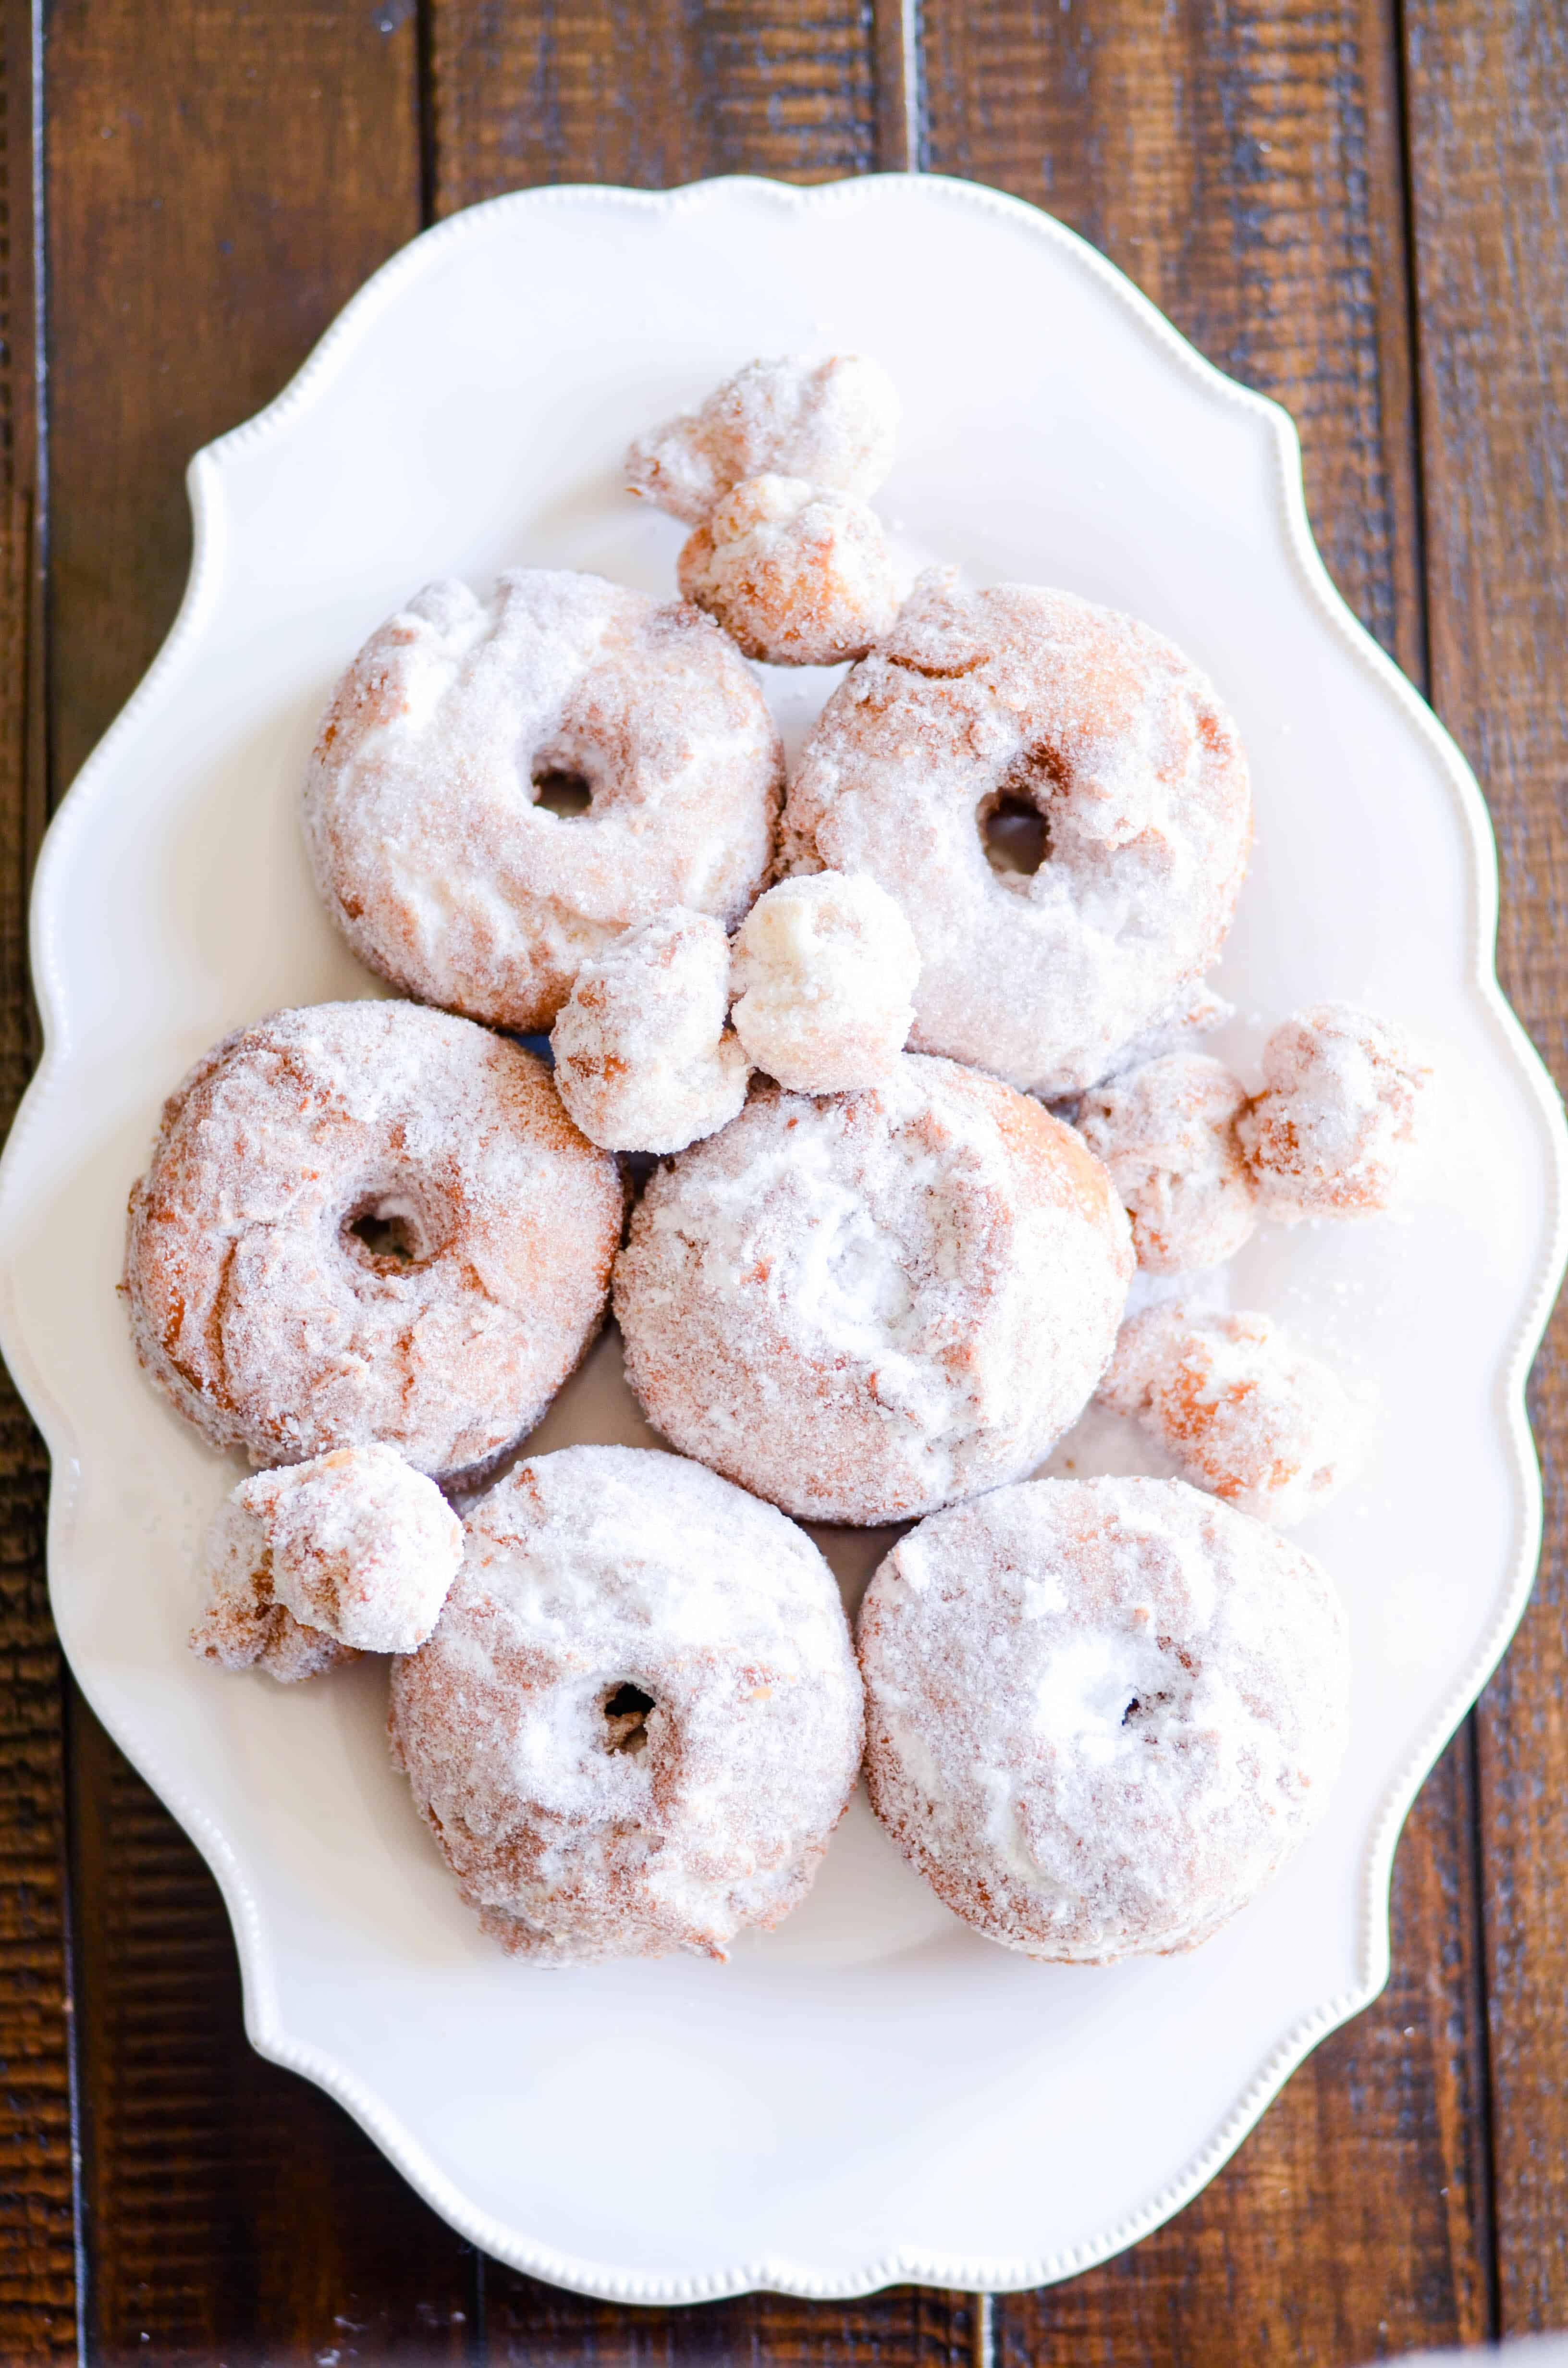 How To Make Old Fashioned Buttermilk Donuts At Home